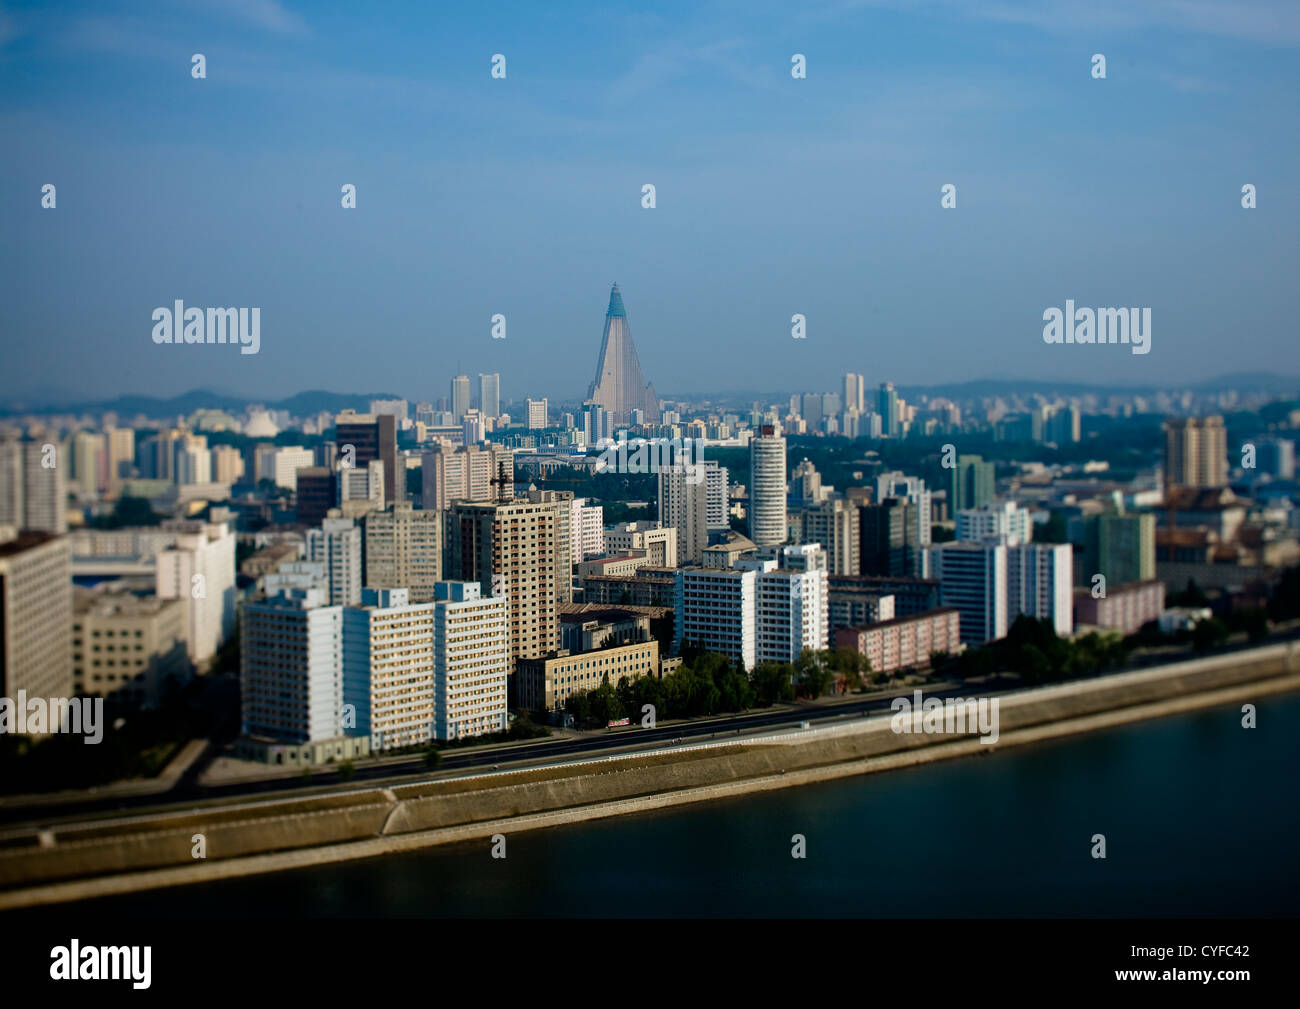 Kempinski Ryugyong Hotel, Hotel of Doom, Pyongyang, North Korea - Stock Image